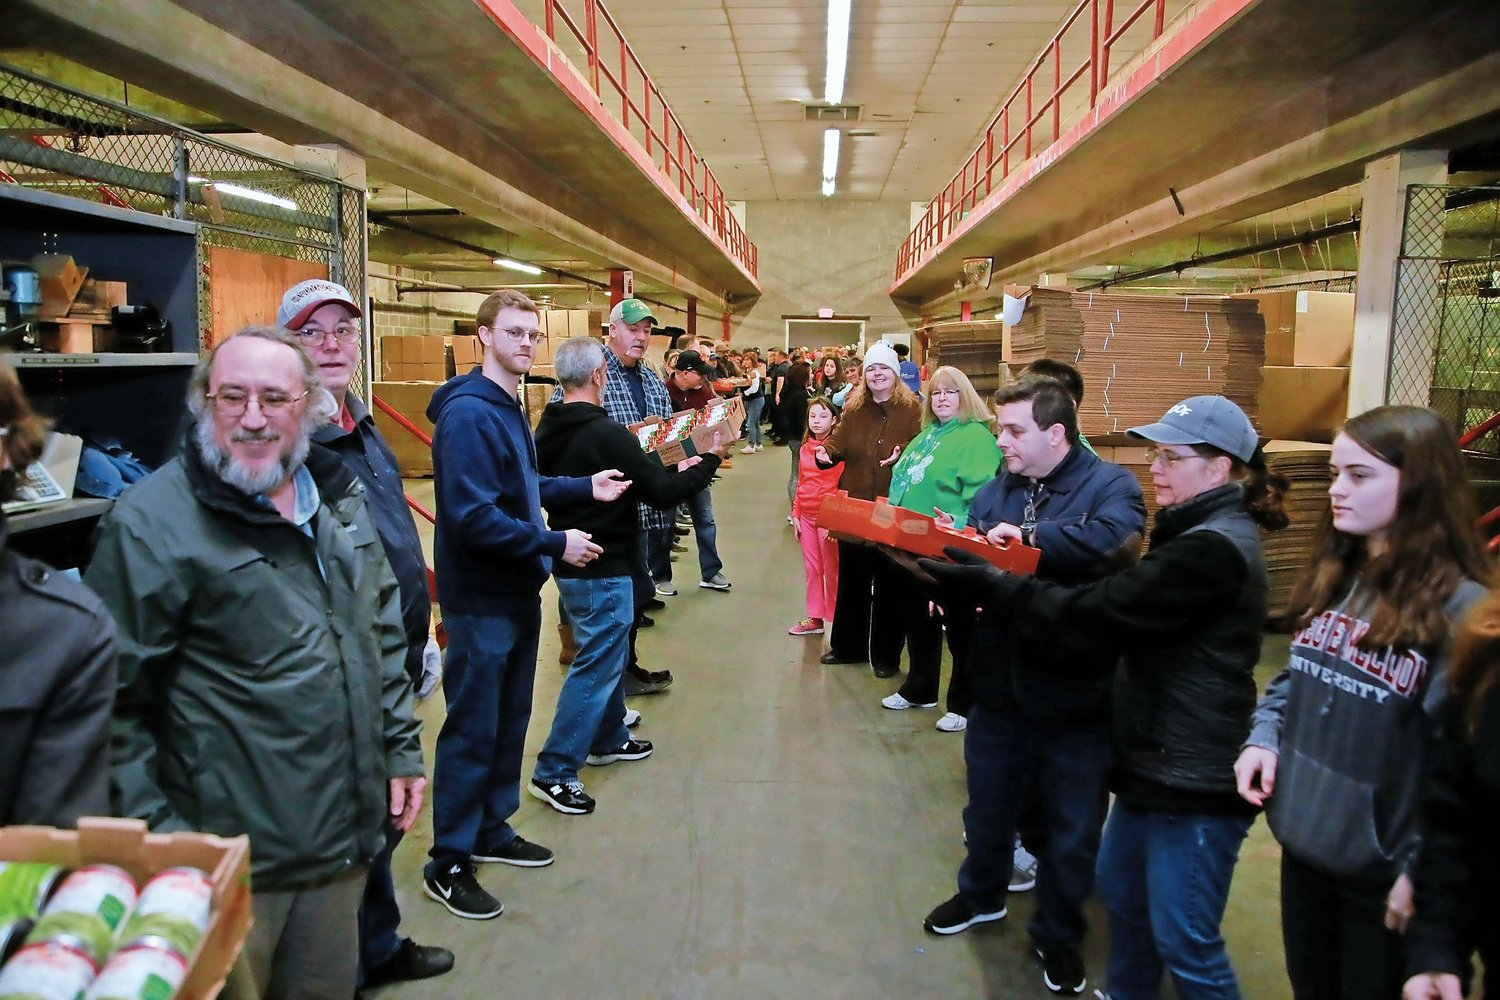 Volunteers formed an assembly line at the Long Island Council of Churches' food pantry in Freeport last year. Rob and Mary Hallam hope to deliver donations to the LICC on April 25.